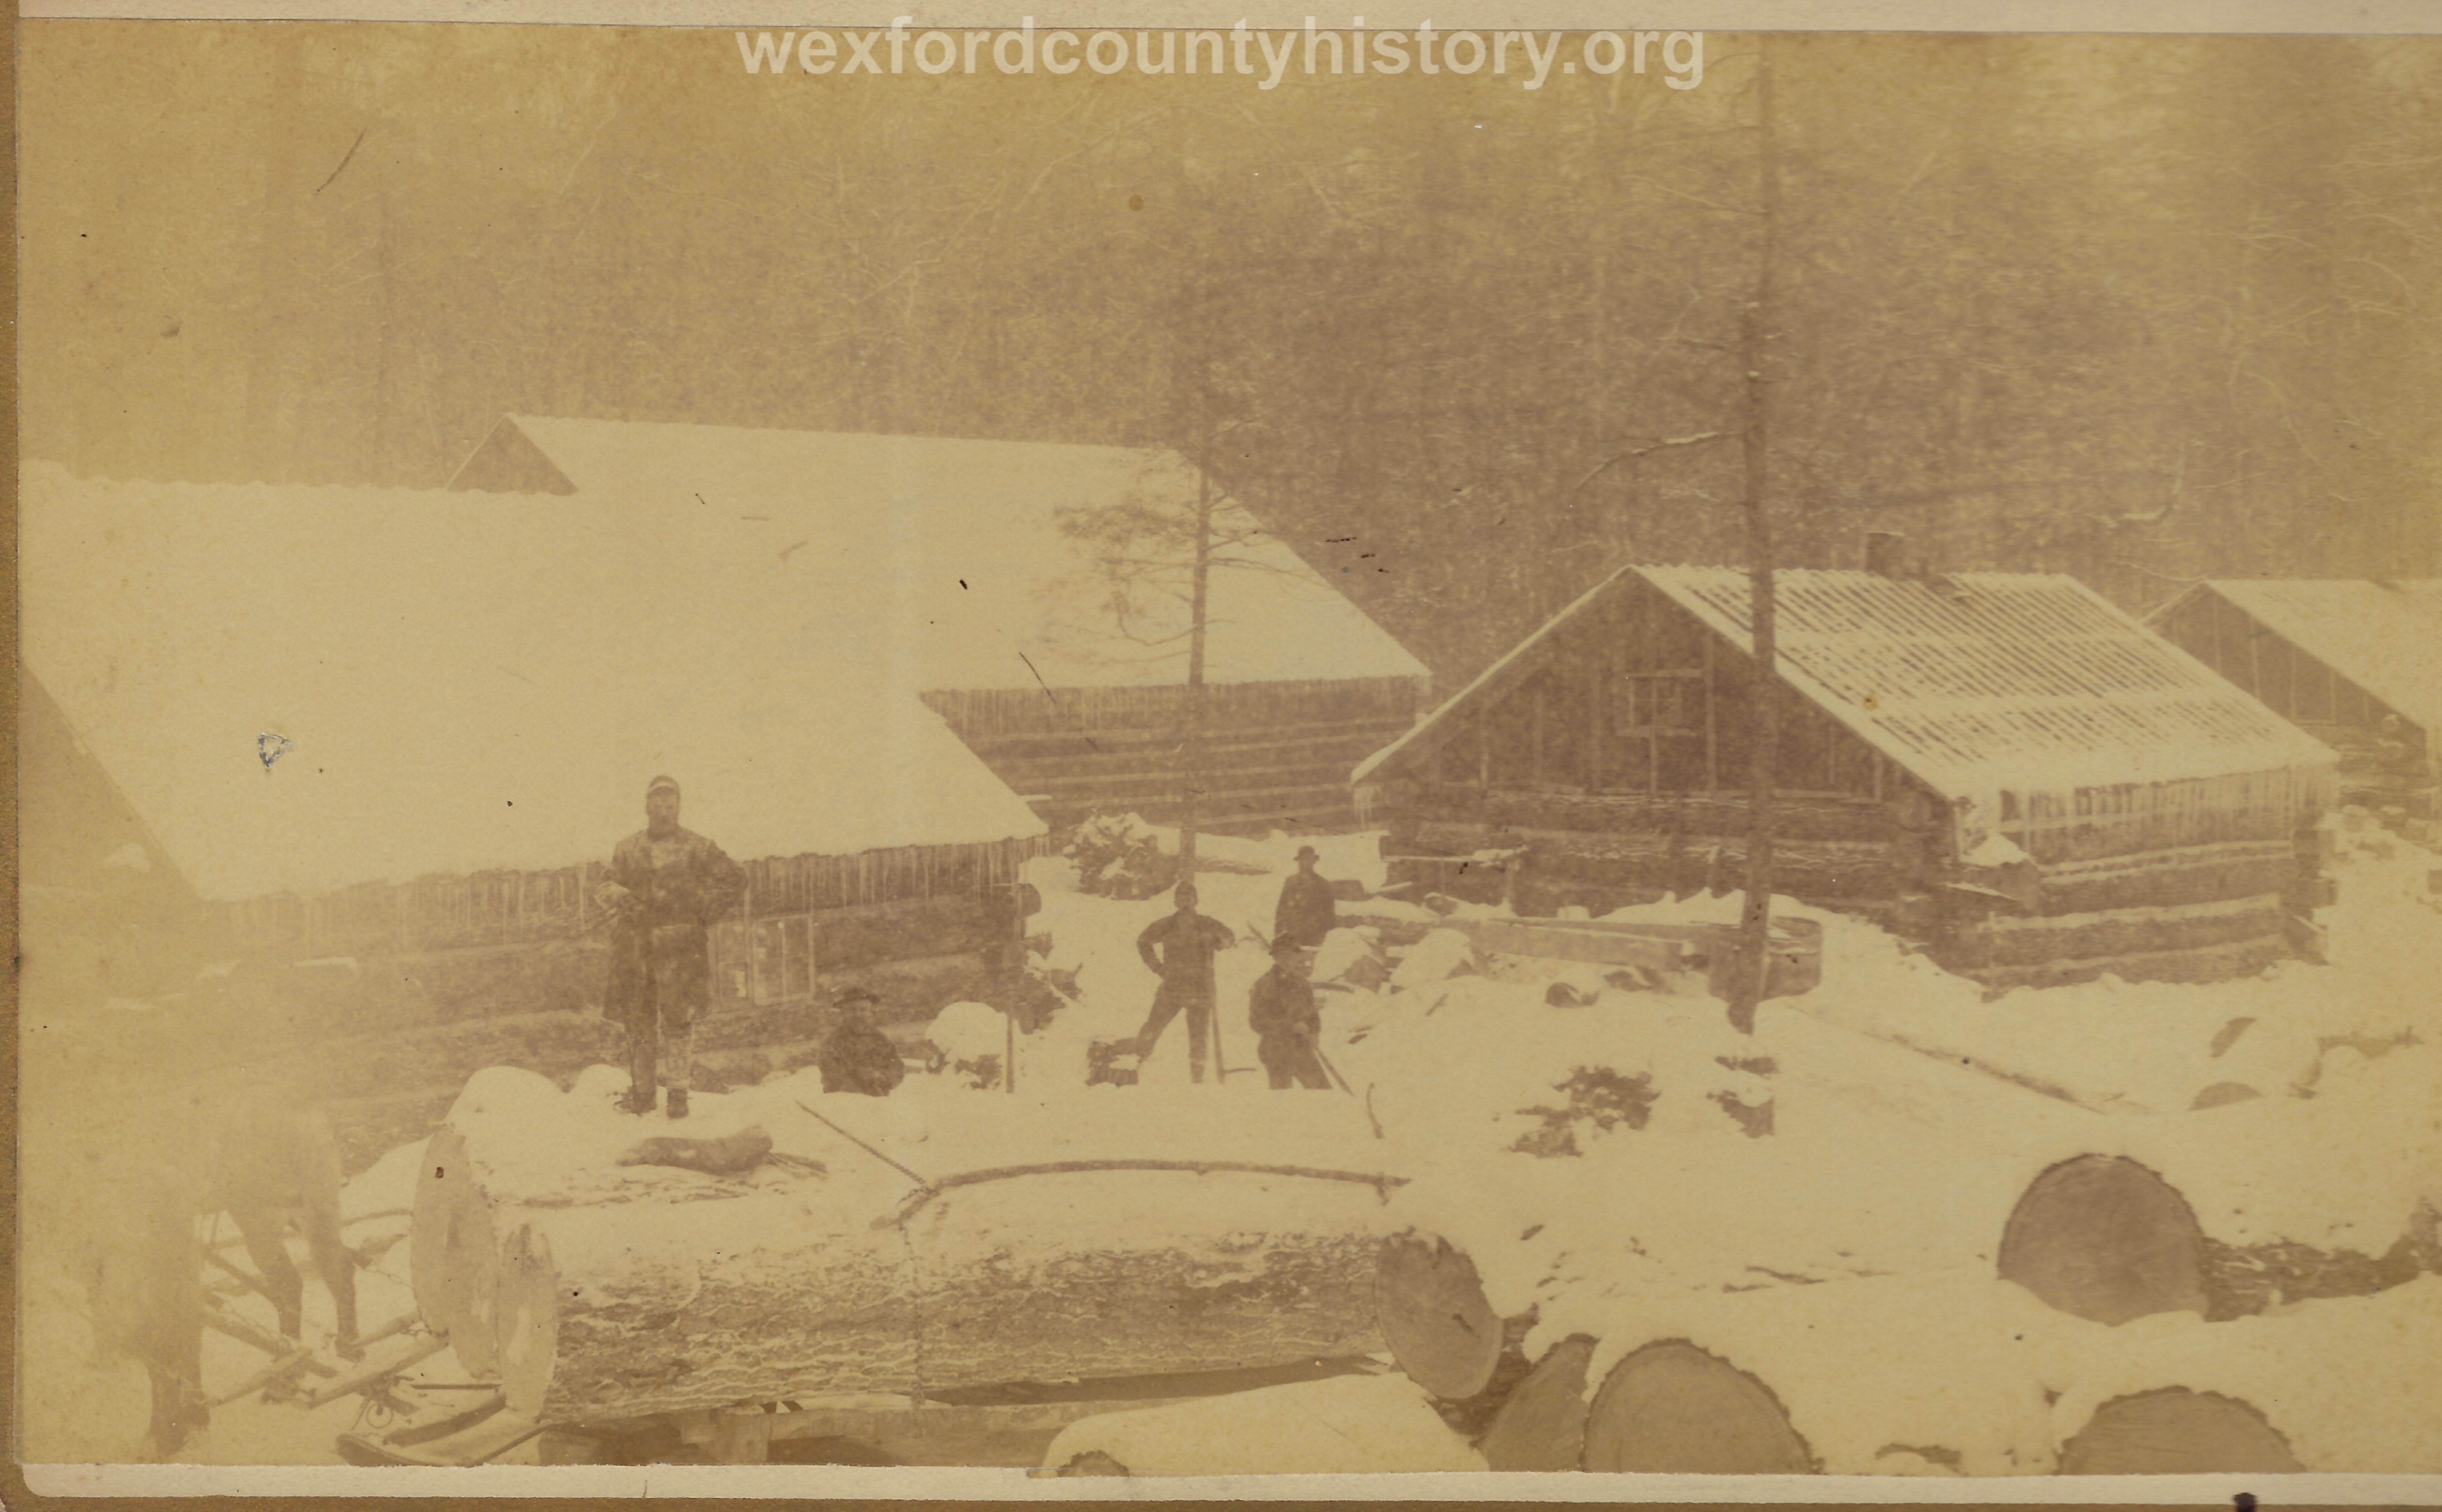 Cadillac-Lumber-Huge-Logs-In-The-Snow-Near-Camp